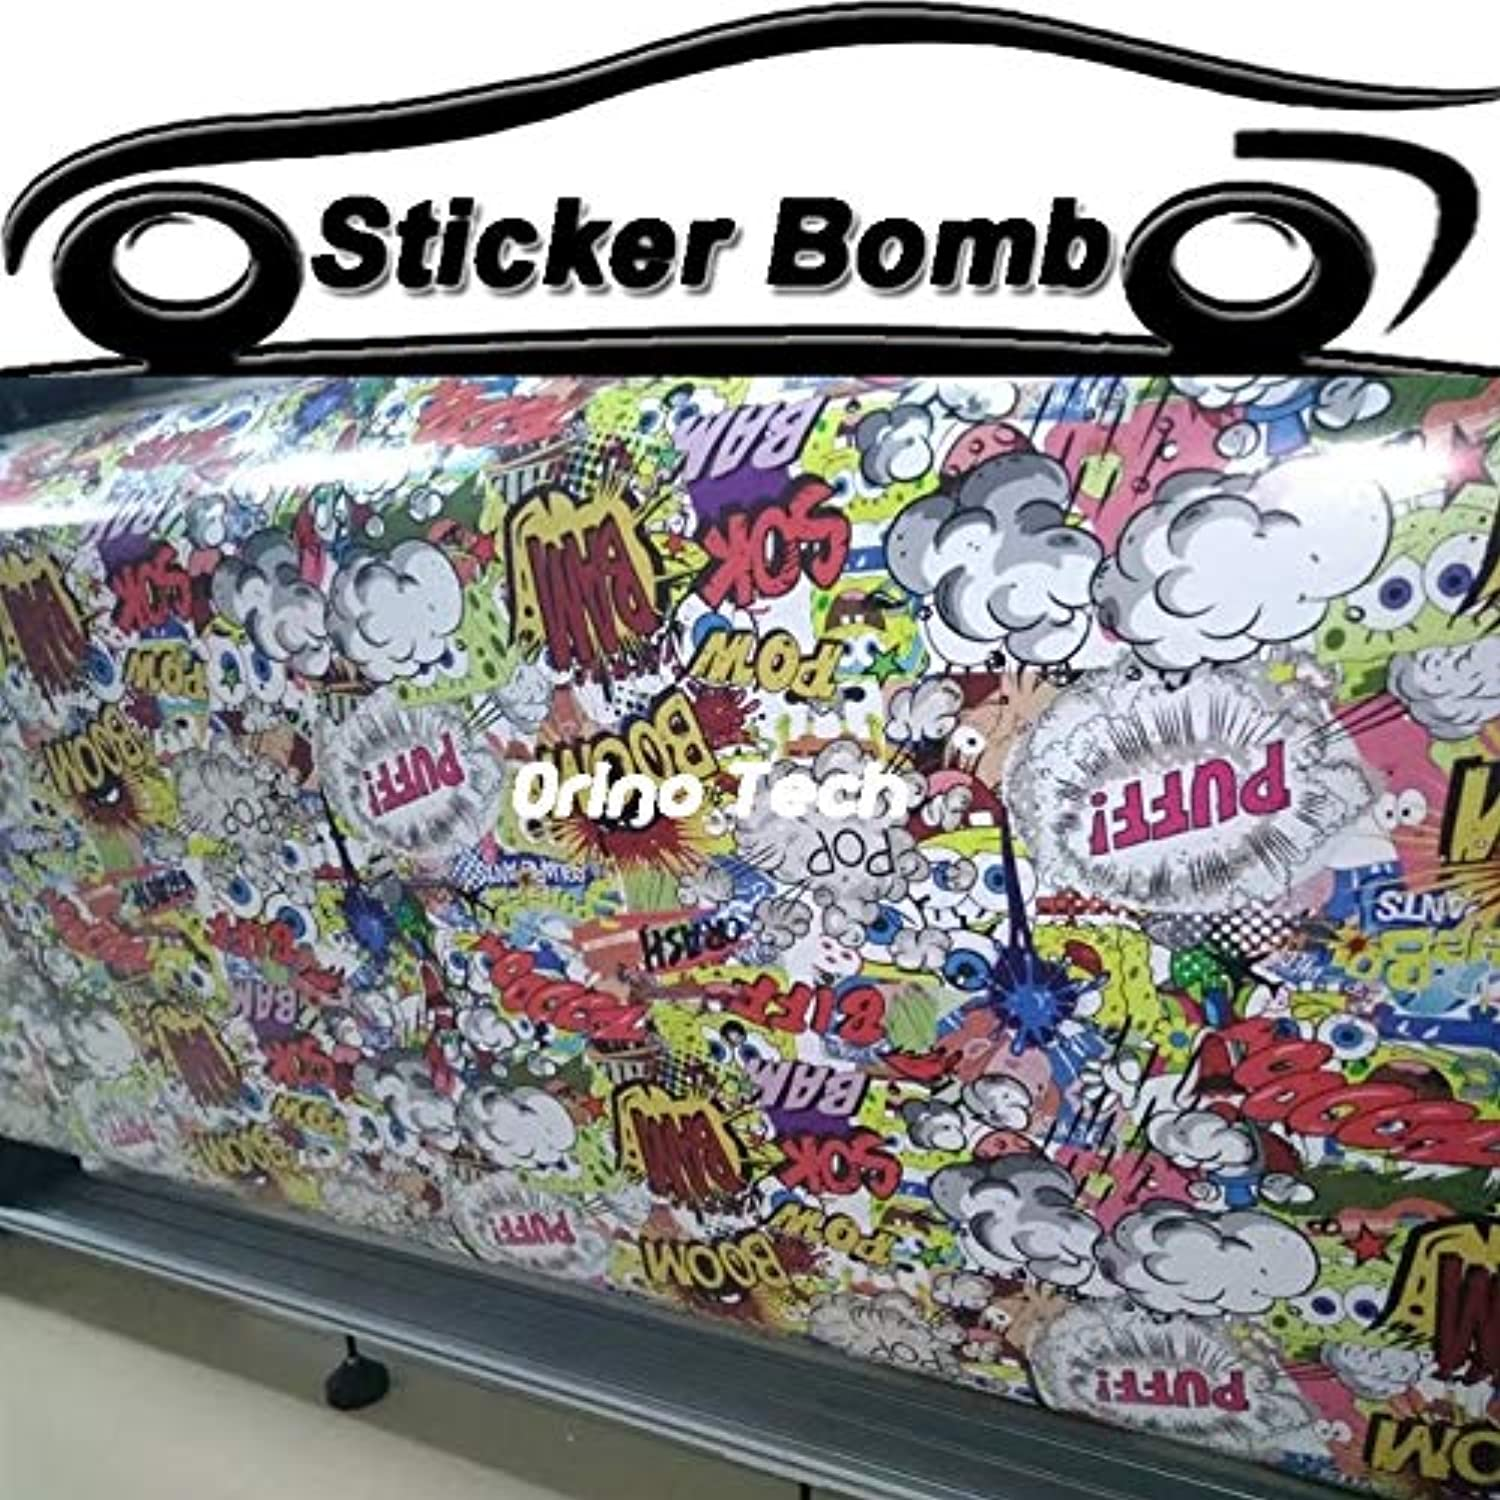 Newest Boom Sticker Bomb Vinyl Wrap Car Styling Stickerbomb Motorcycle Bike Truck Car Film Wrapping Covers(Size  5 Meters)